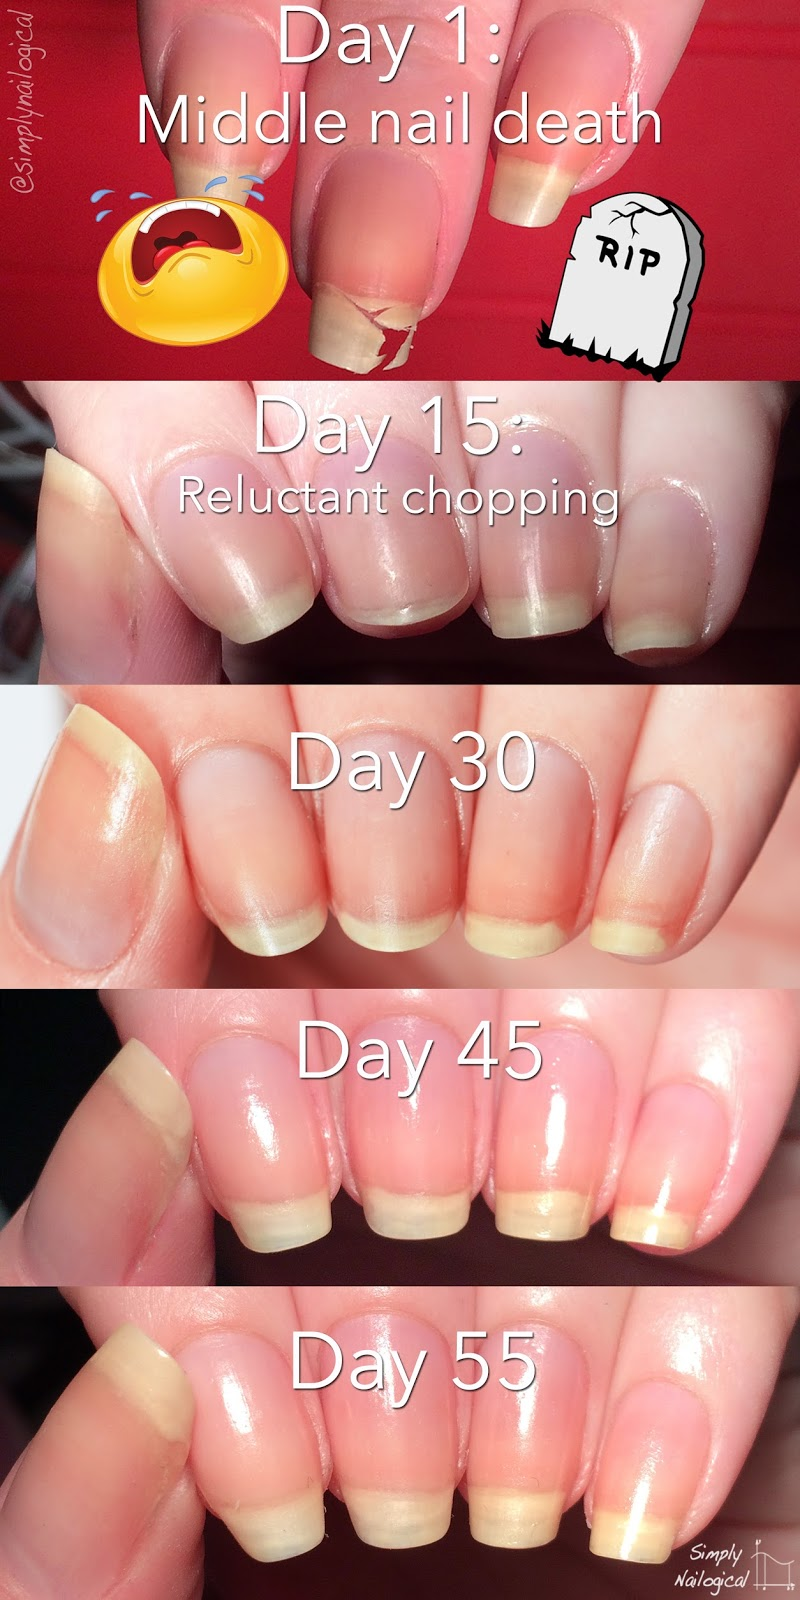 Dun Nosorry: Ways to Make Nails Grow Faster wikiHow